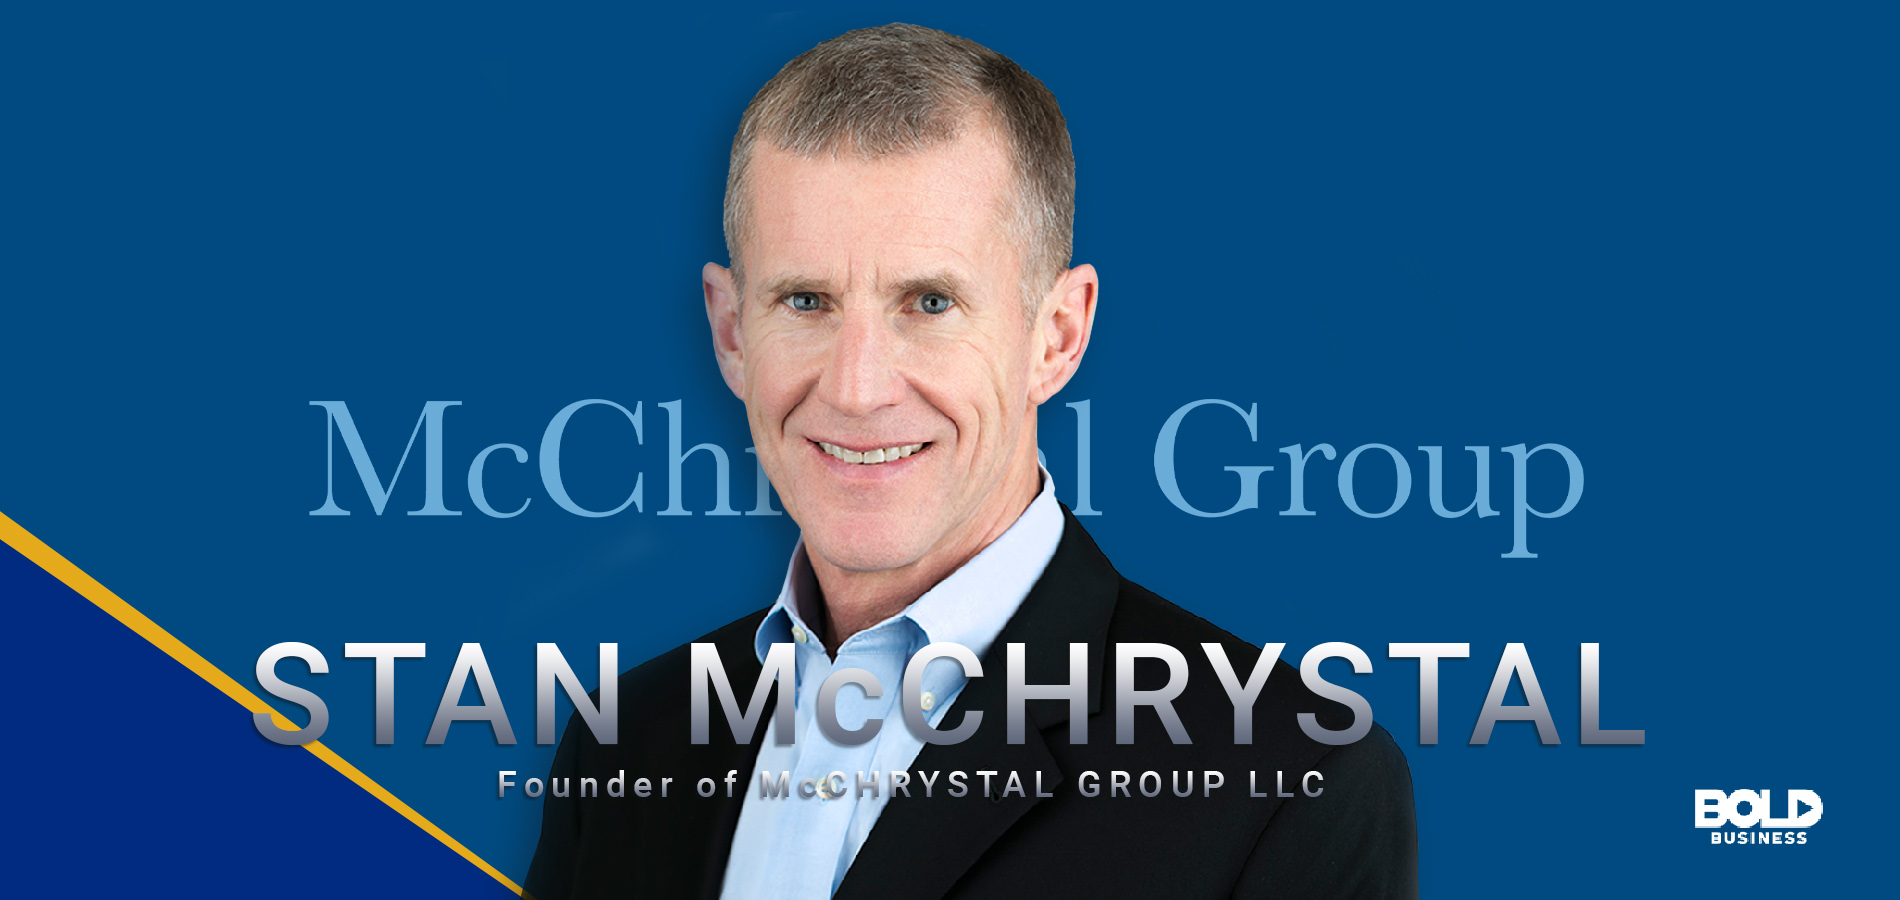 Stanley McChrystal is a bold leader